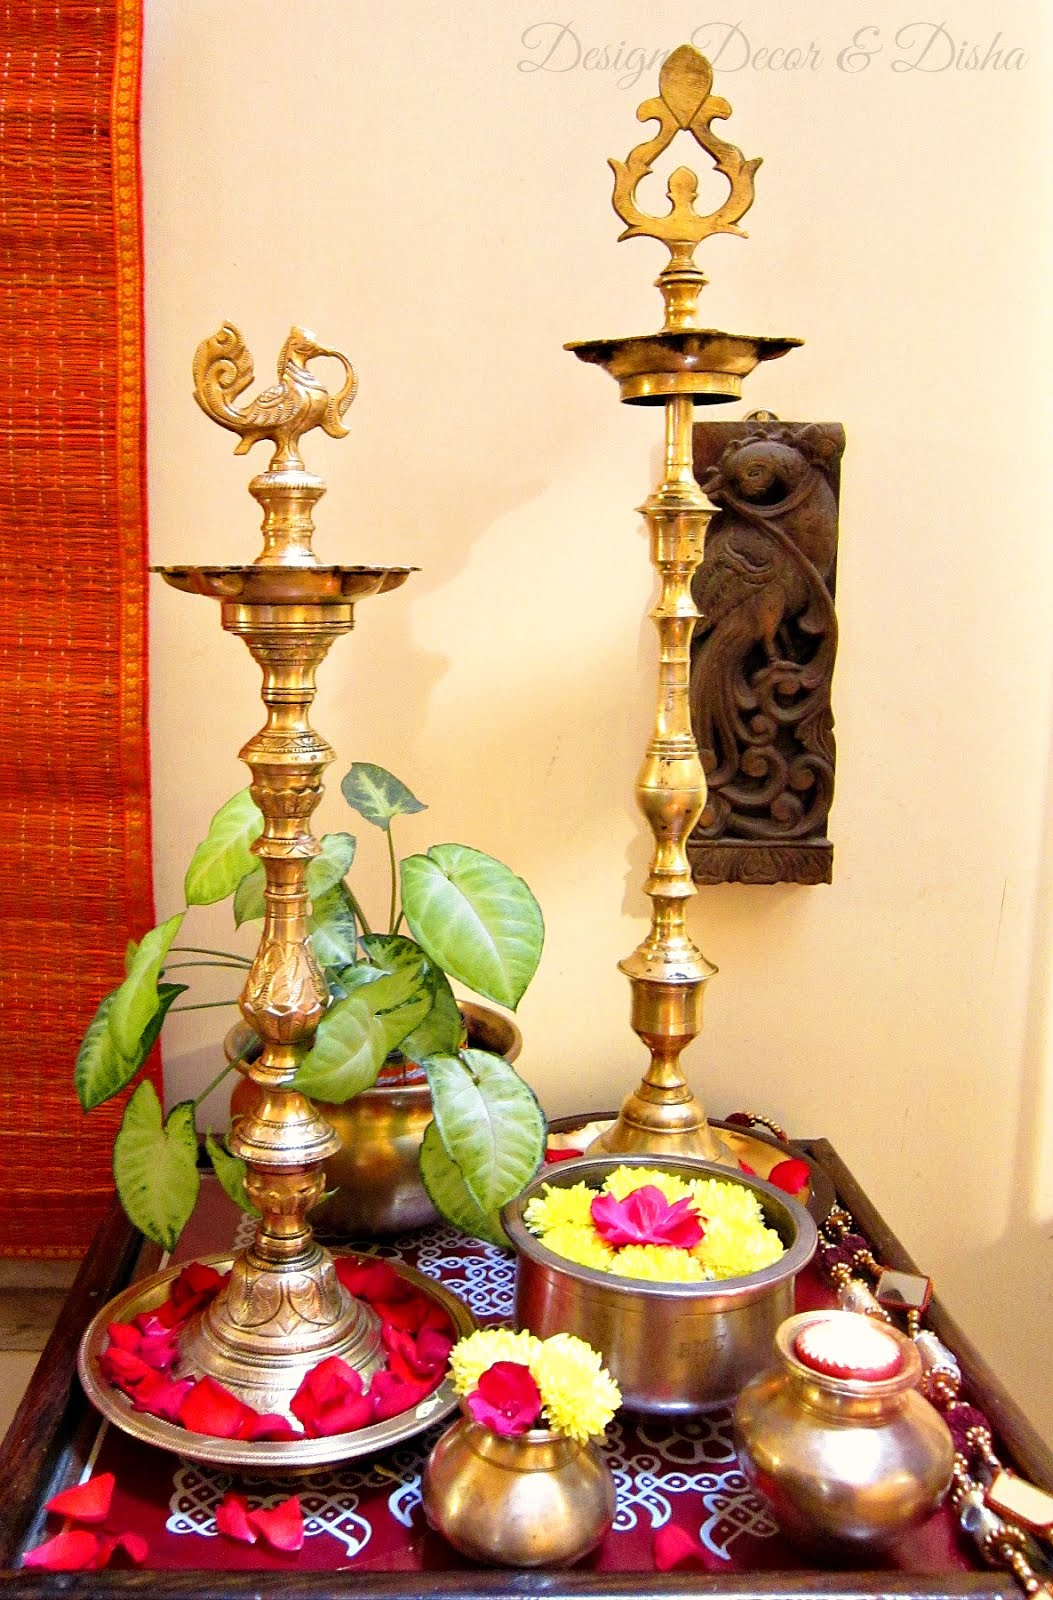 Design Decor & Disha | An Indian Design & Decor Blog ...